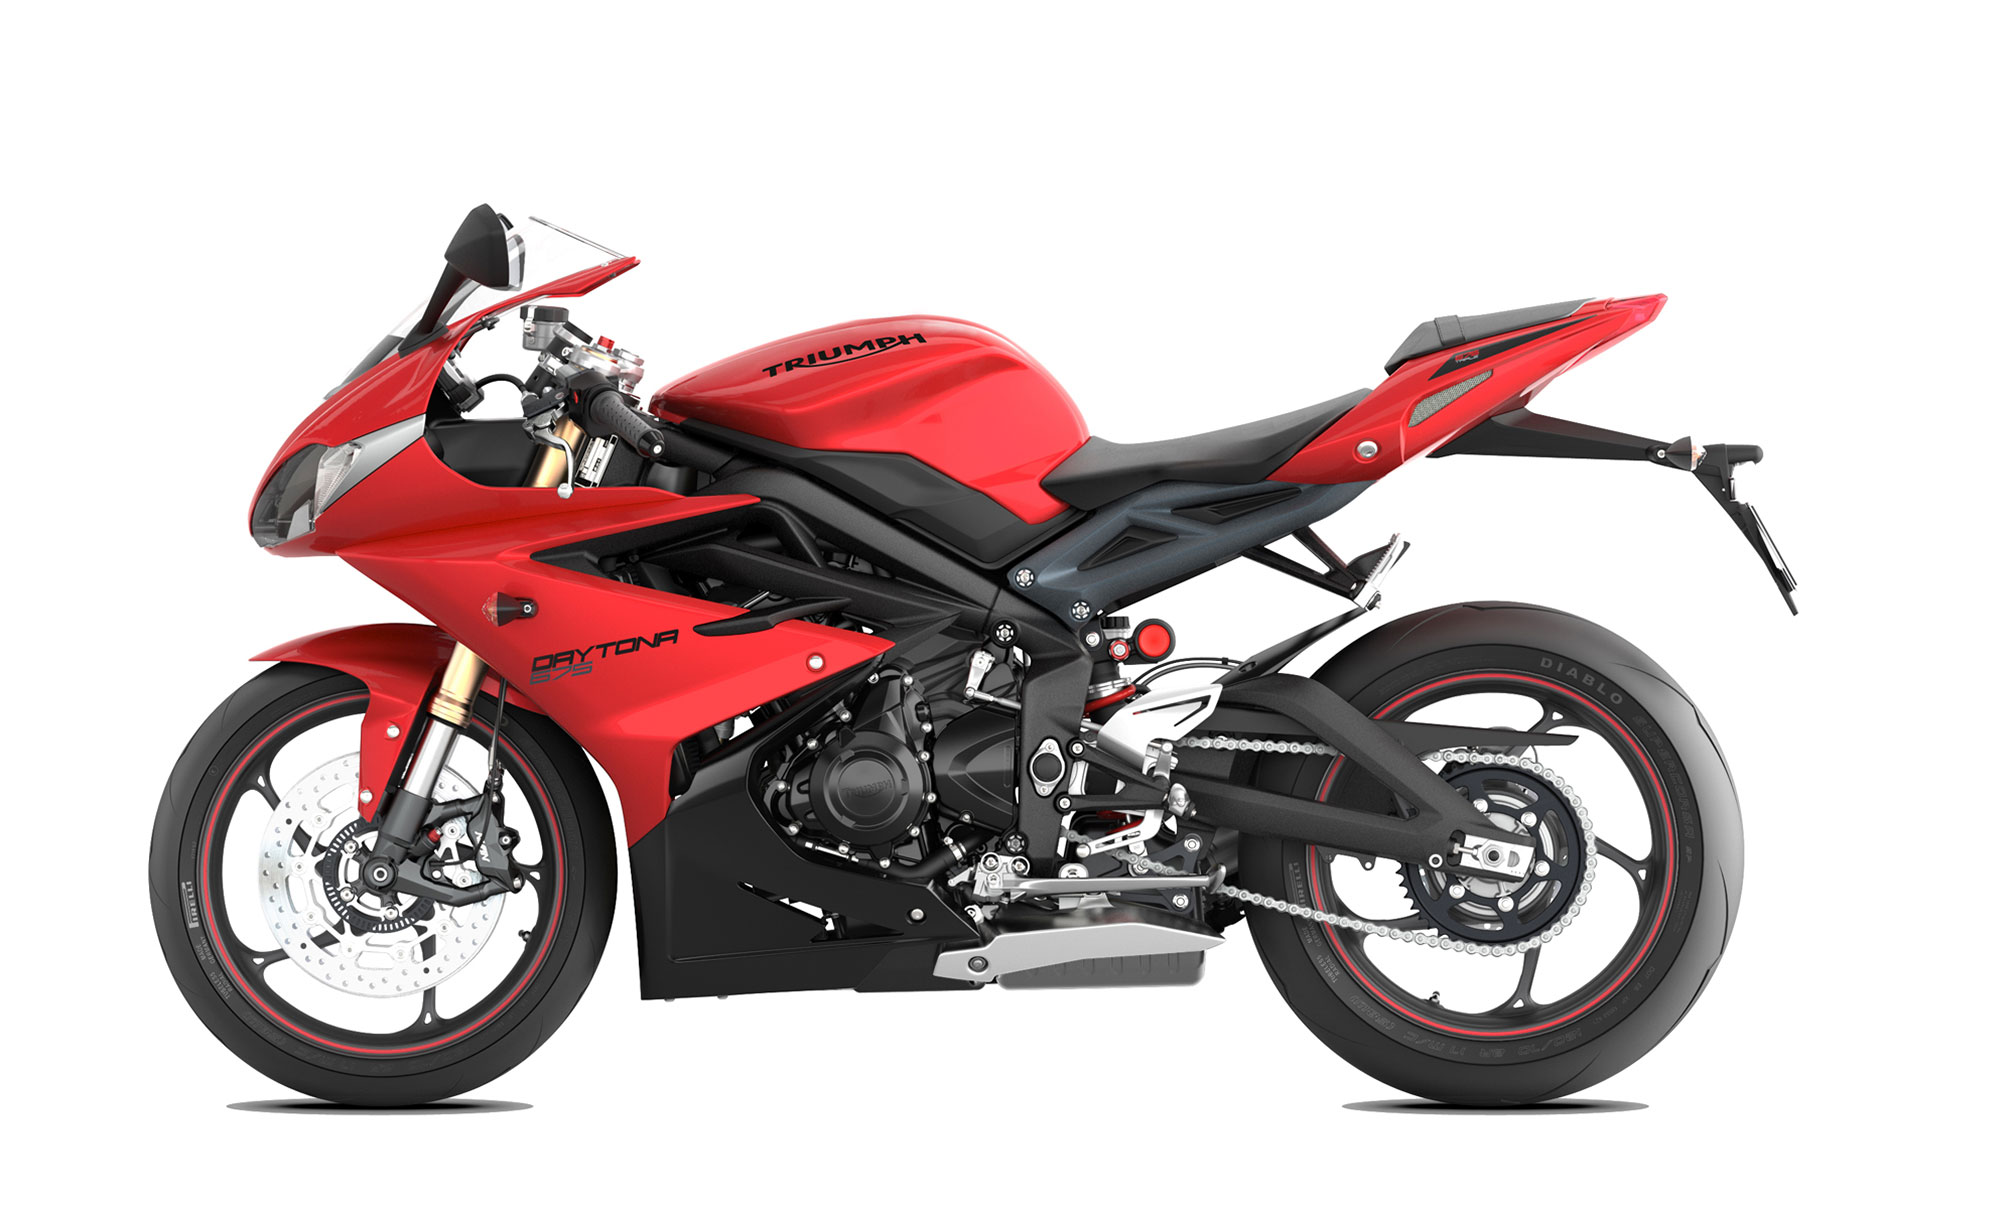 2015 triumph daytona 675 abs review. Black Bedroom Furniture Sets. Home Design Ideas